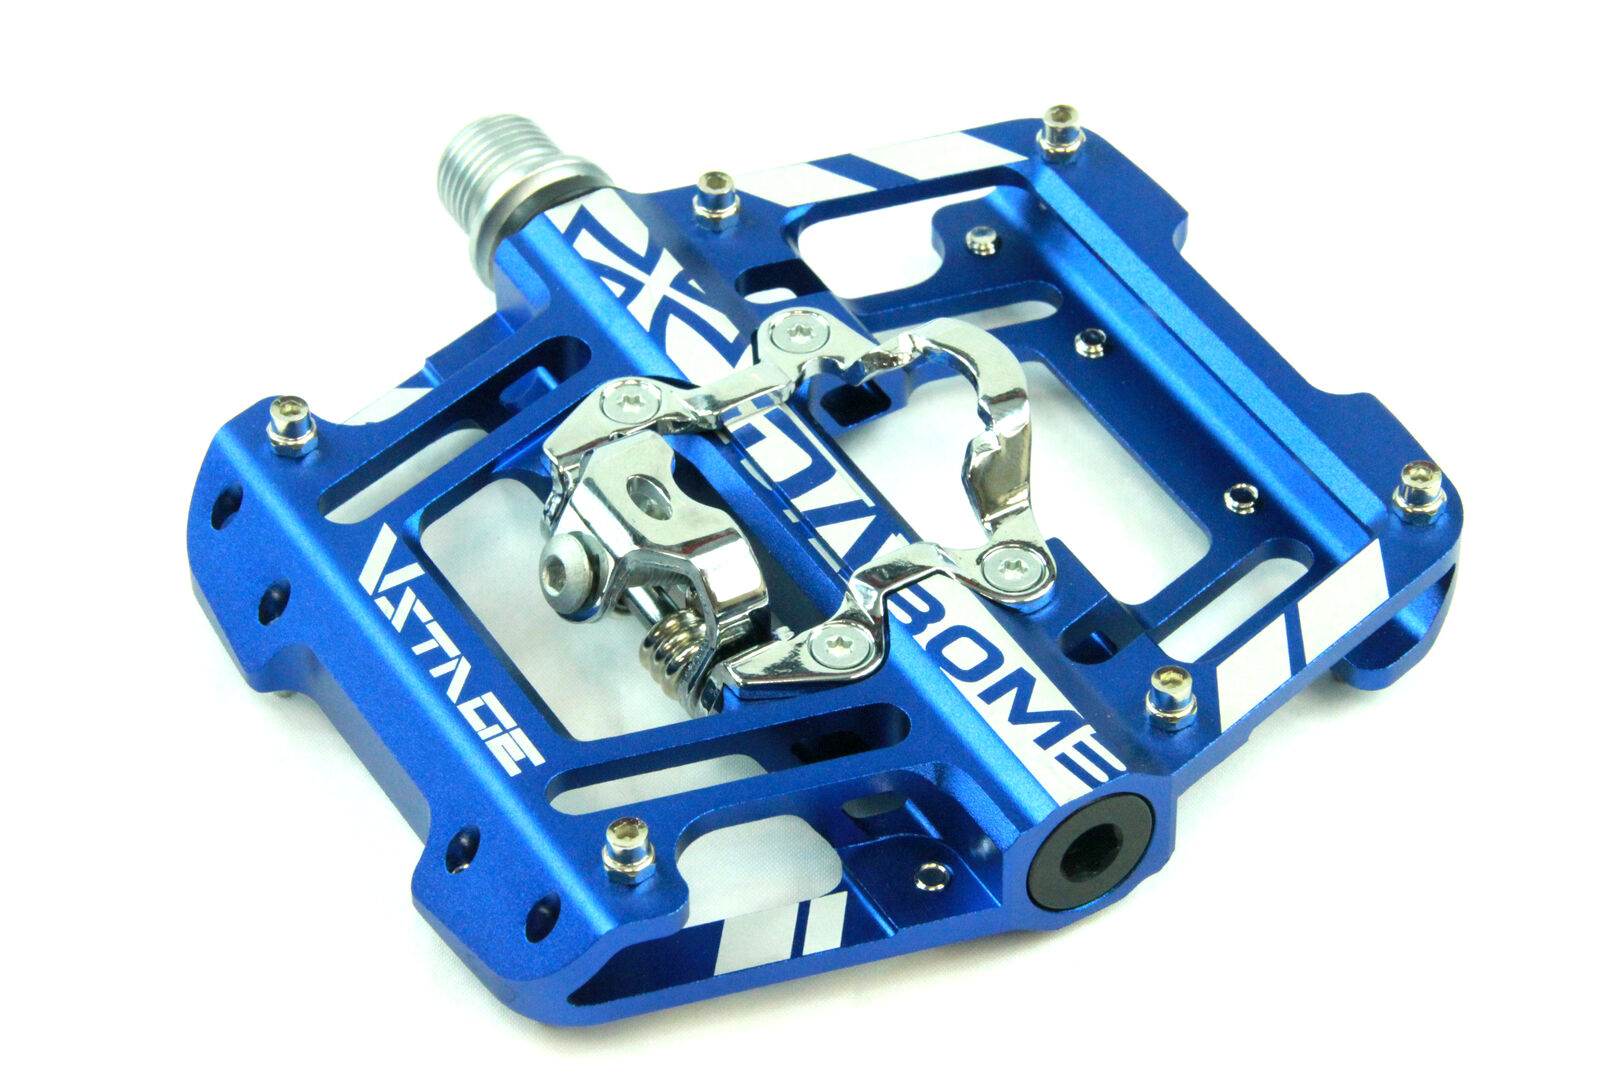 DaBomb V STAGE MTB Pedal Set - Double Side Design for Clip-In and Flat - blueee